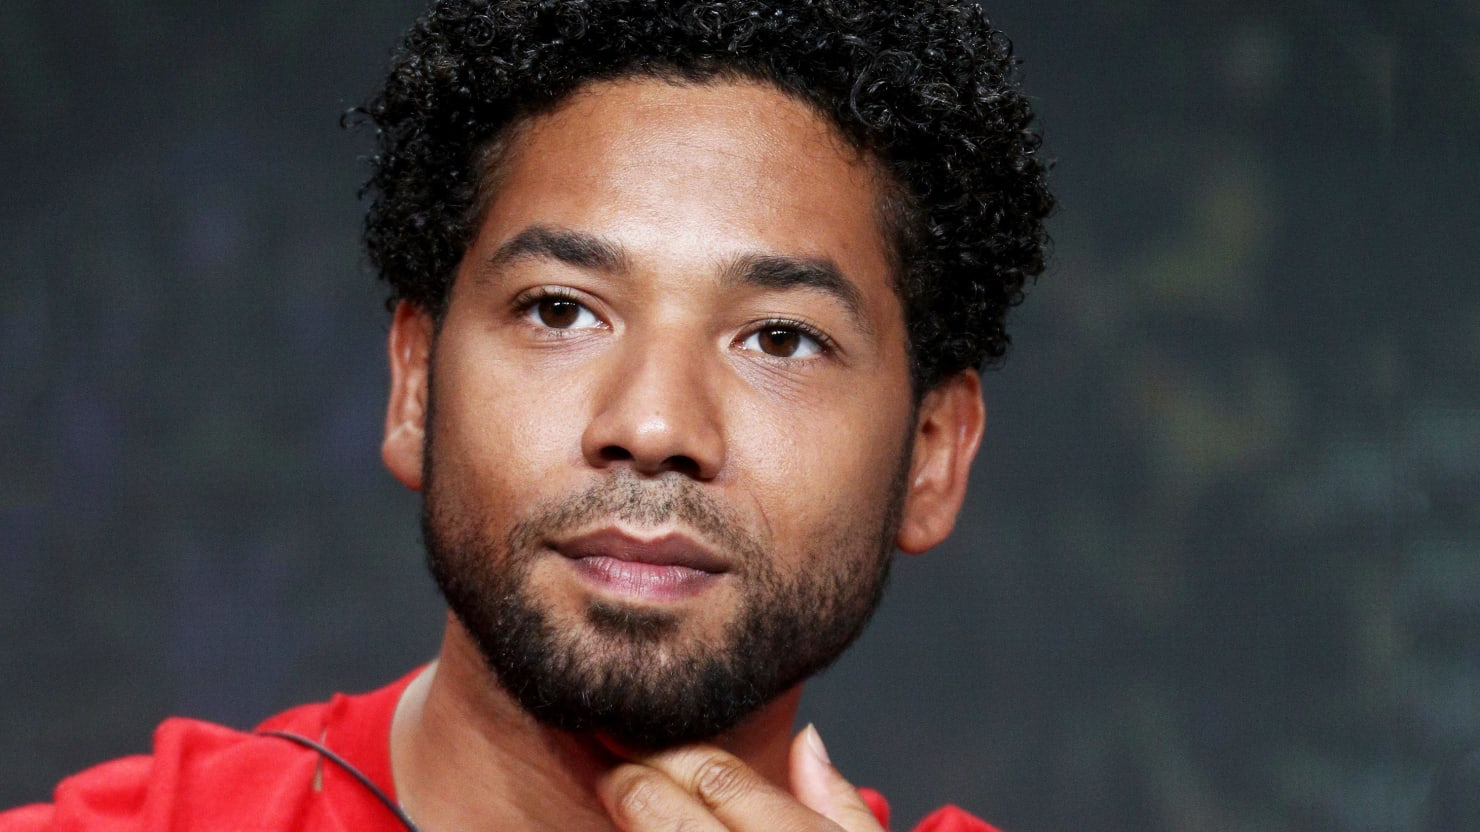 Fakers Like Jussie Smollett Play Victim, Politicians Buy It And Play Right Into Trump's Hands